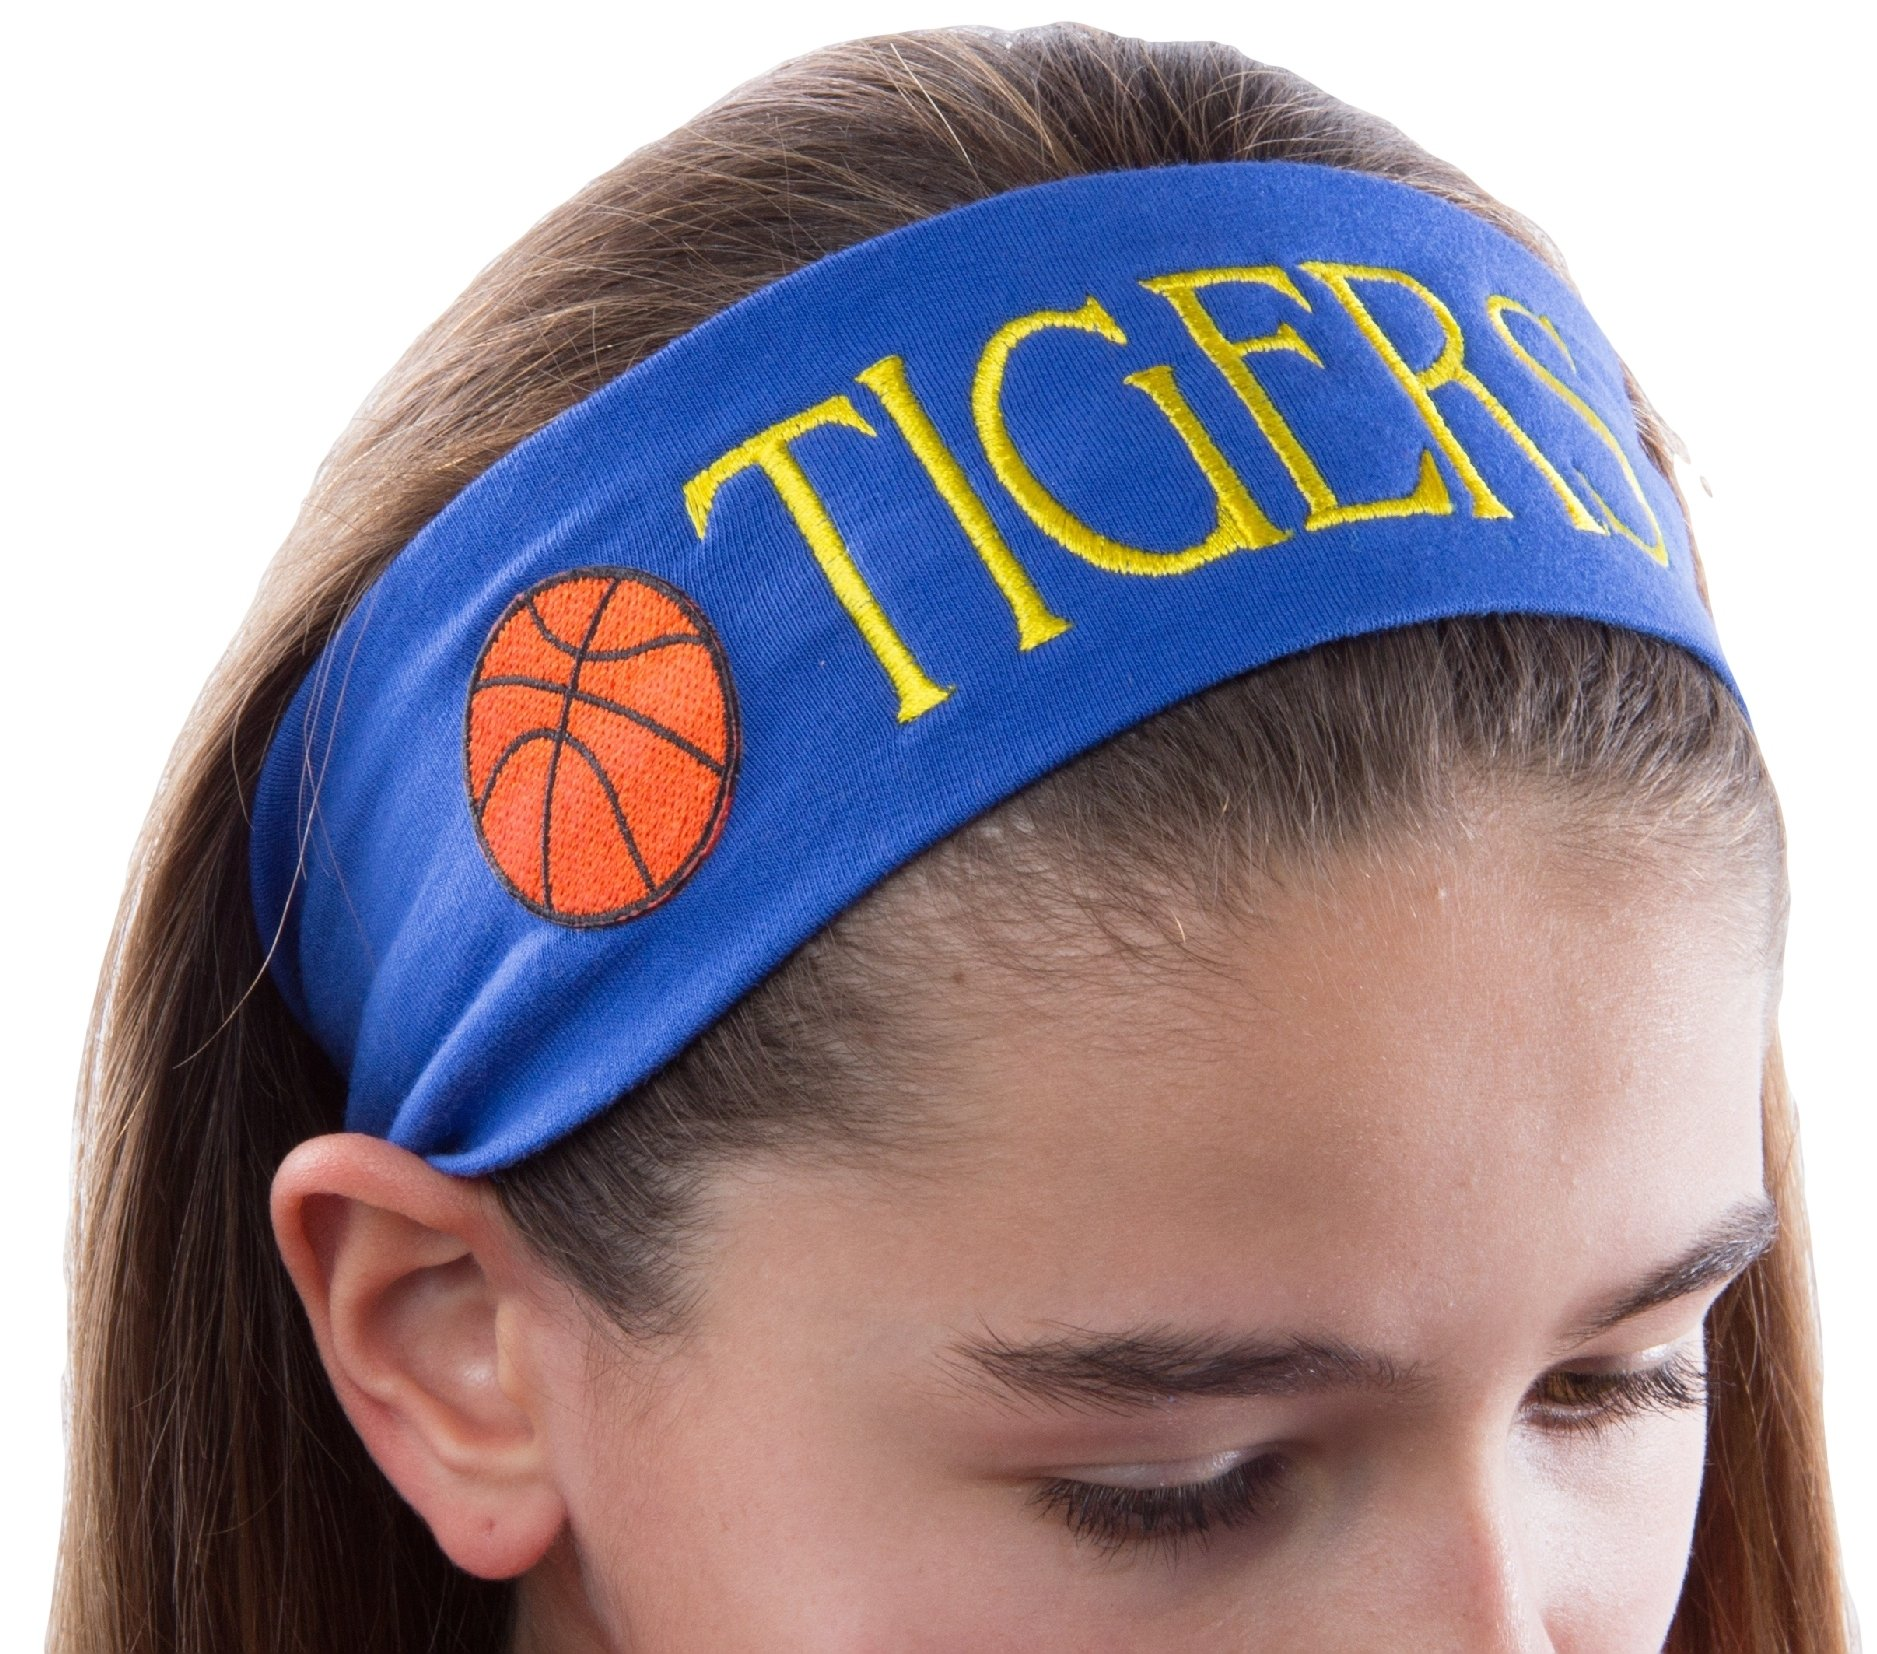 Personalized Monogrammed Embroidered BASKETBALL Patch Cotton Stretch Headband CHOOSE YOUR CUSTOM COLORS FROM CHARTS IN THIS LISTING